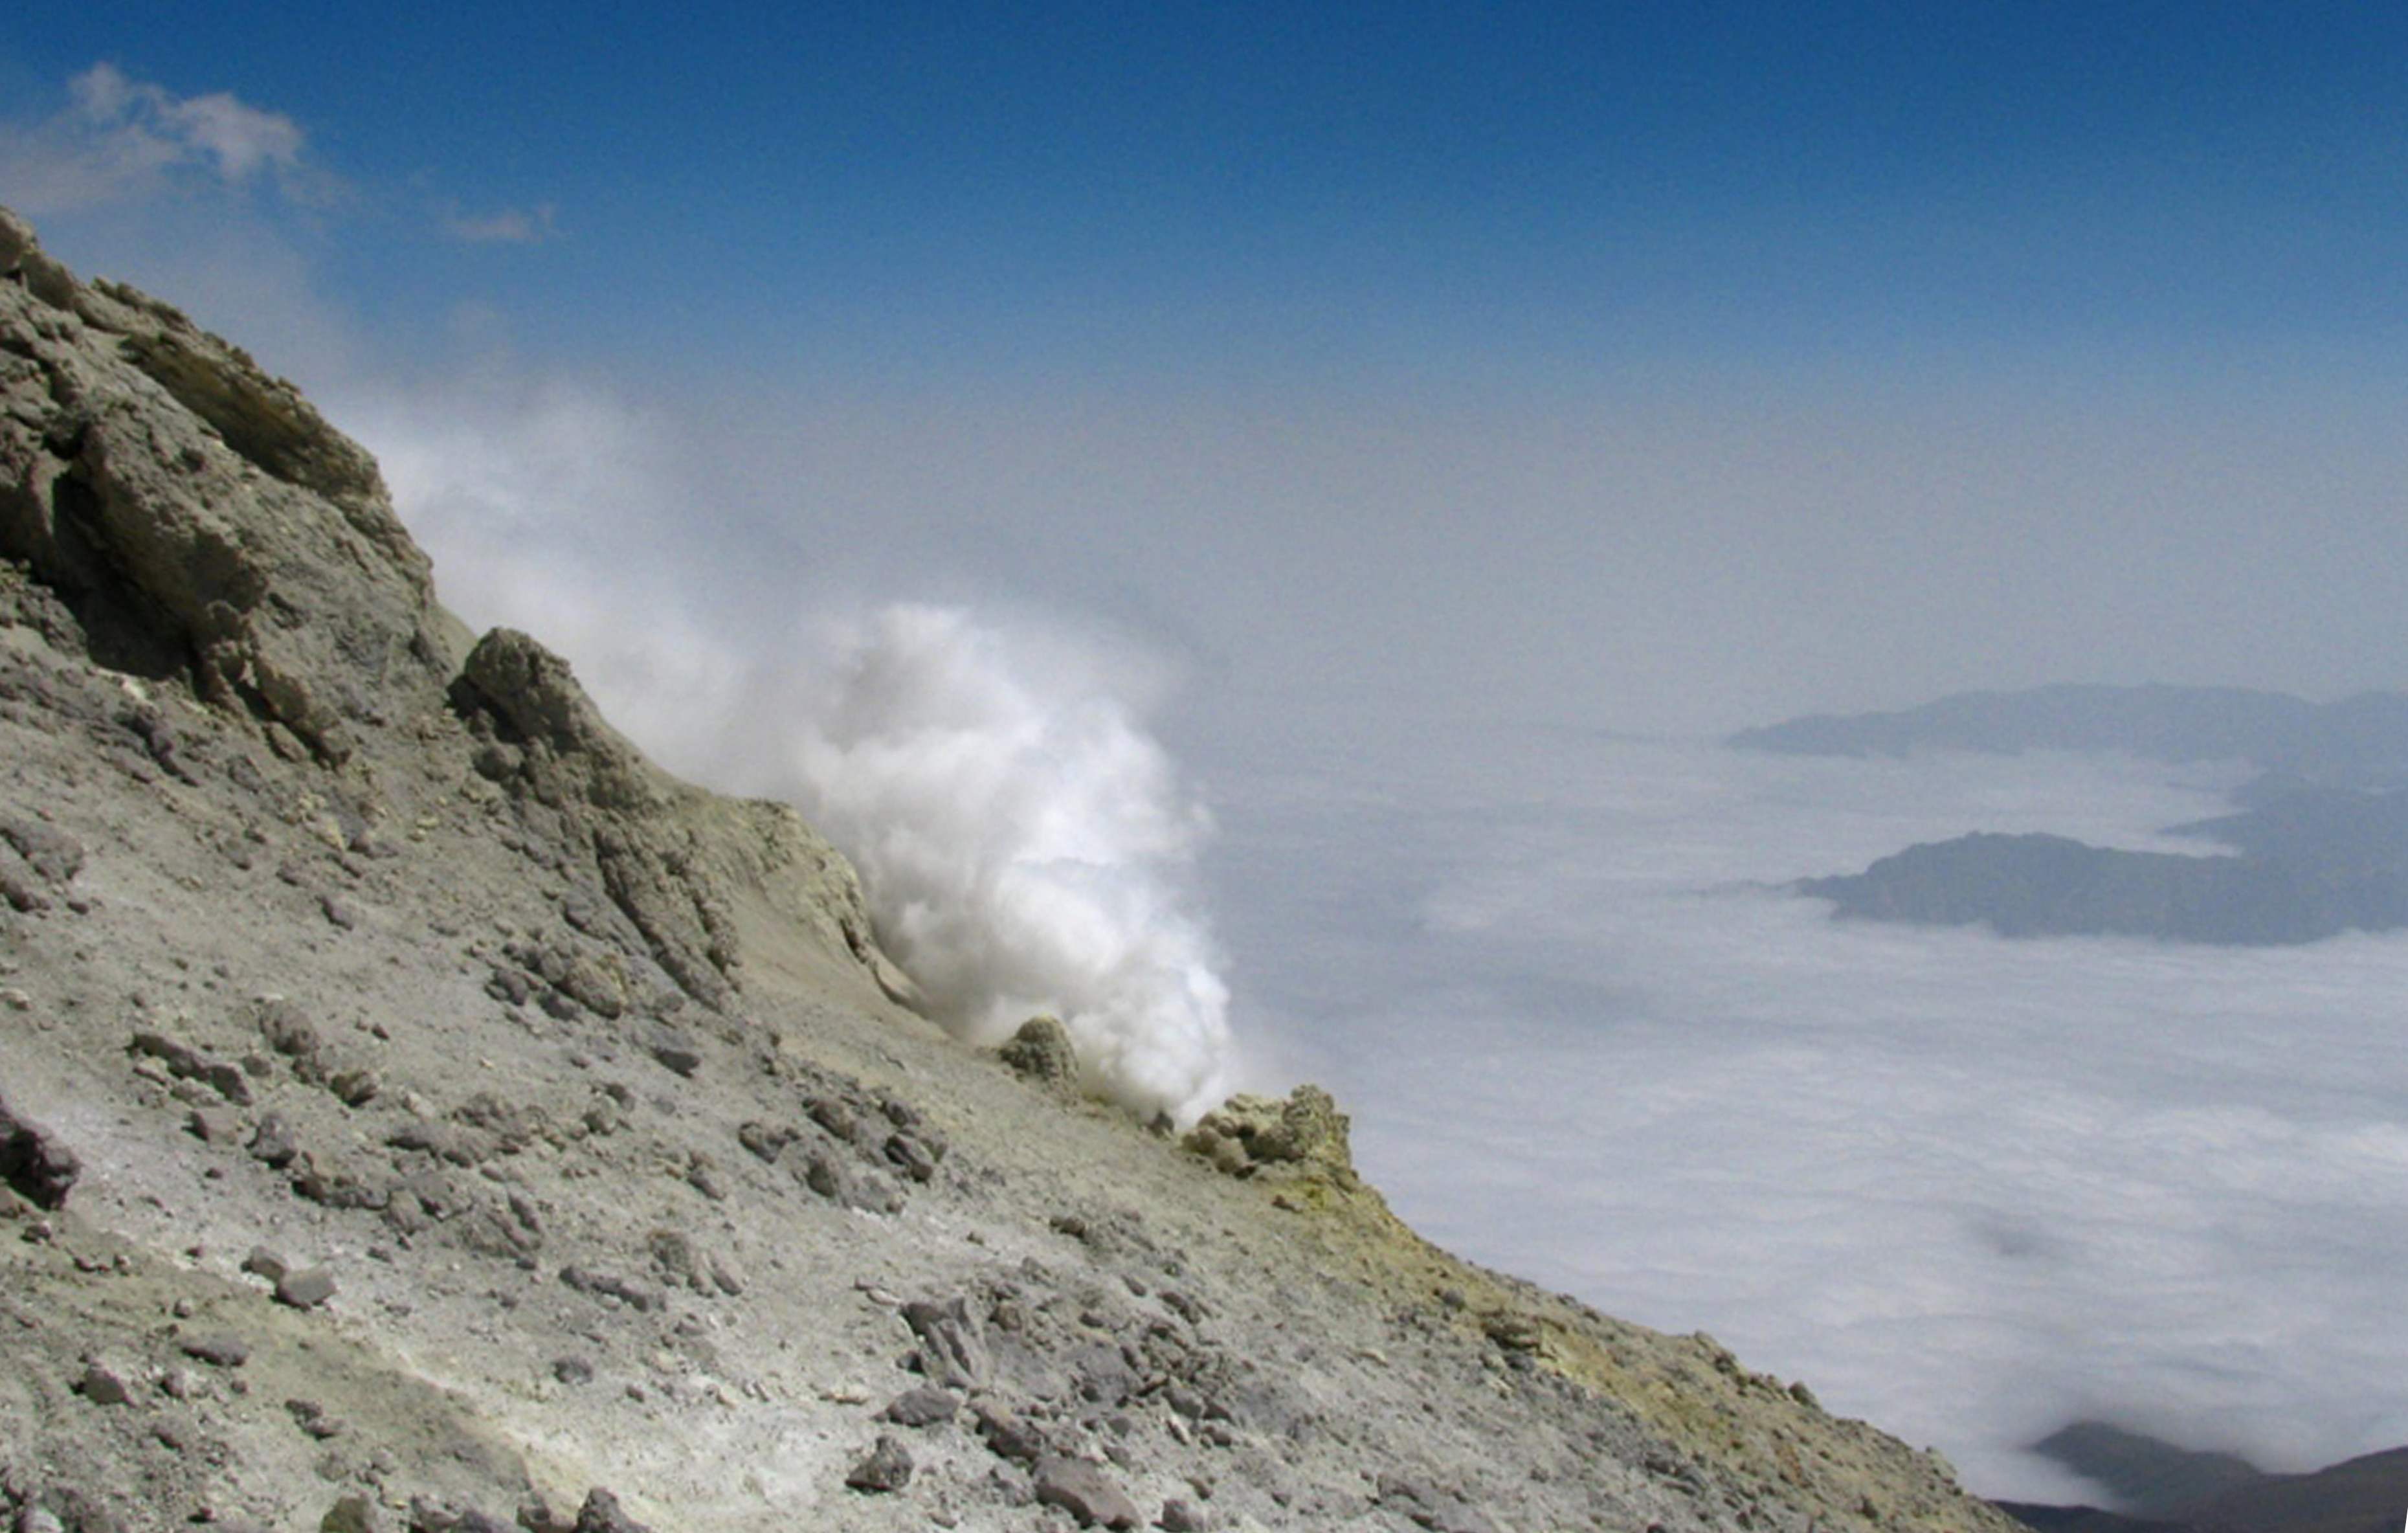 14. The Conduit of Sulfur Dioxide Before The Summit of Damavand